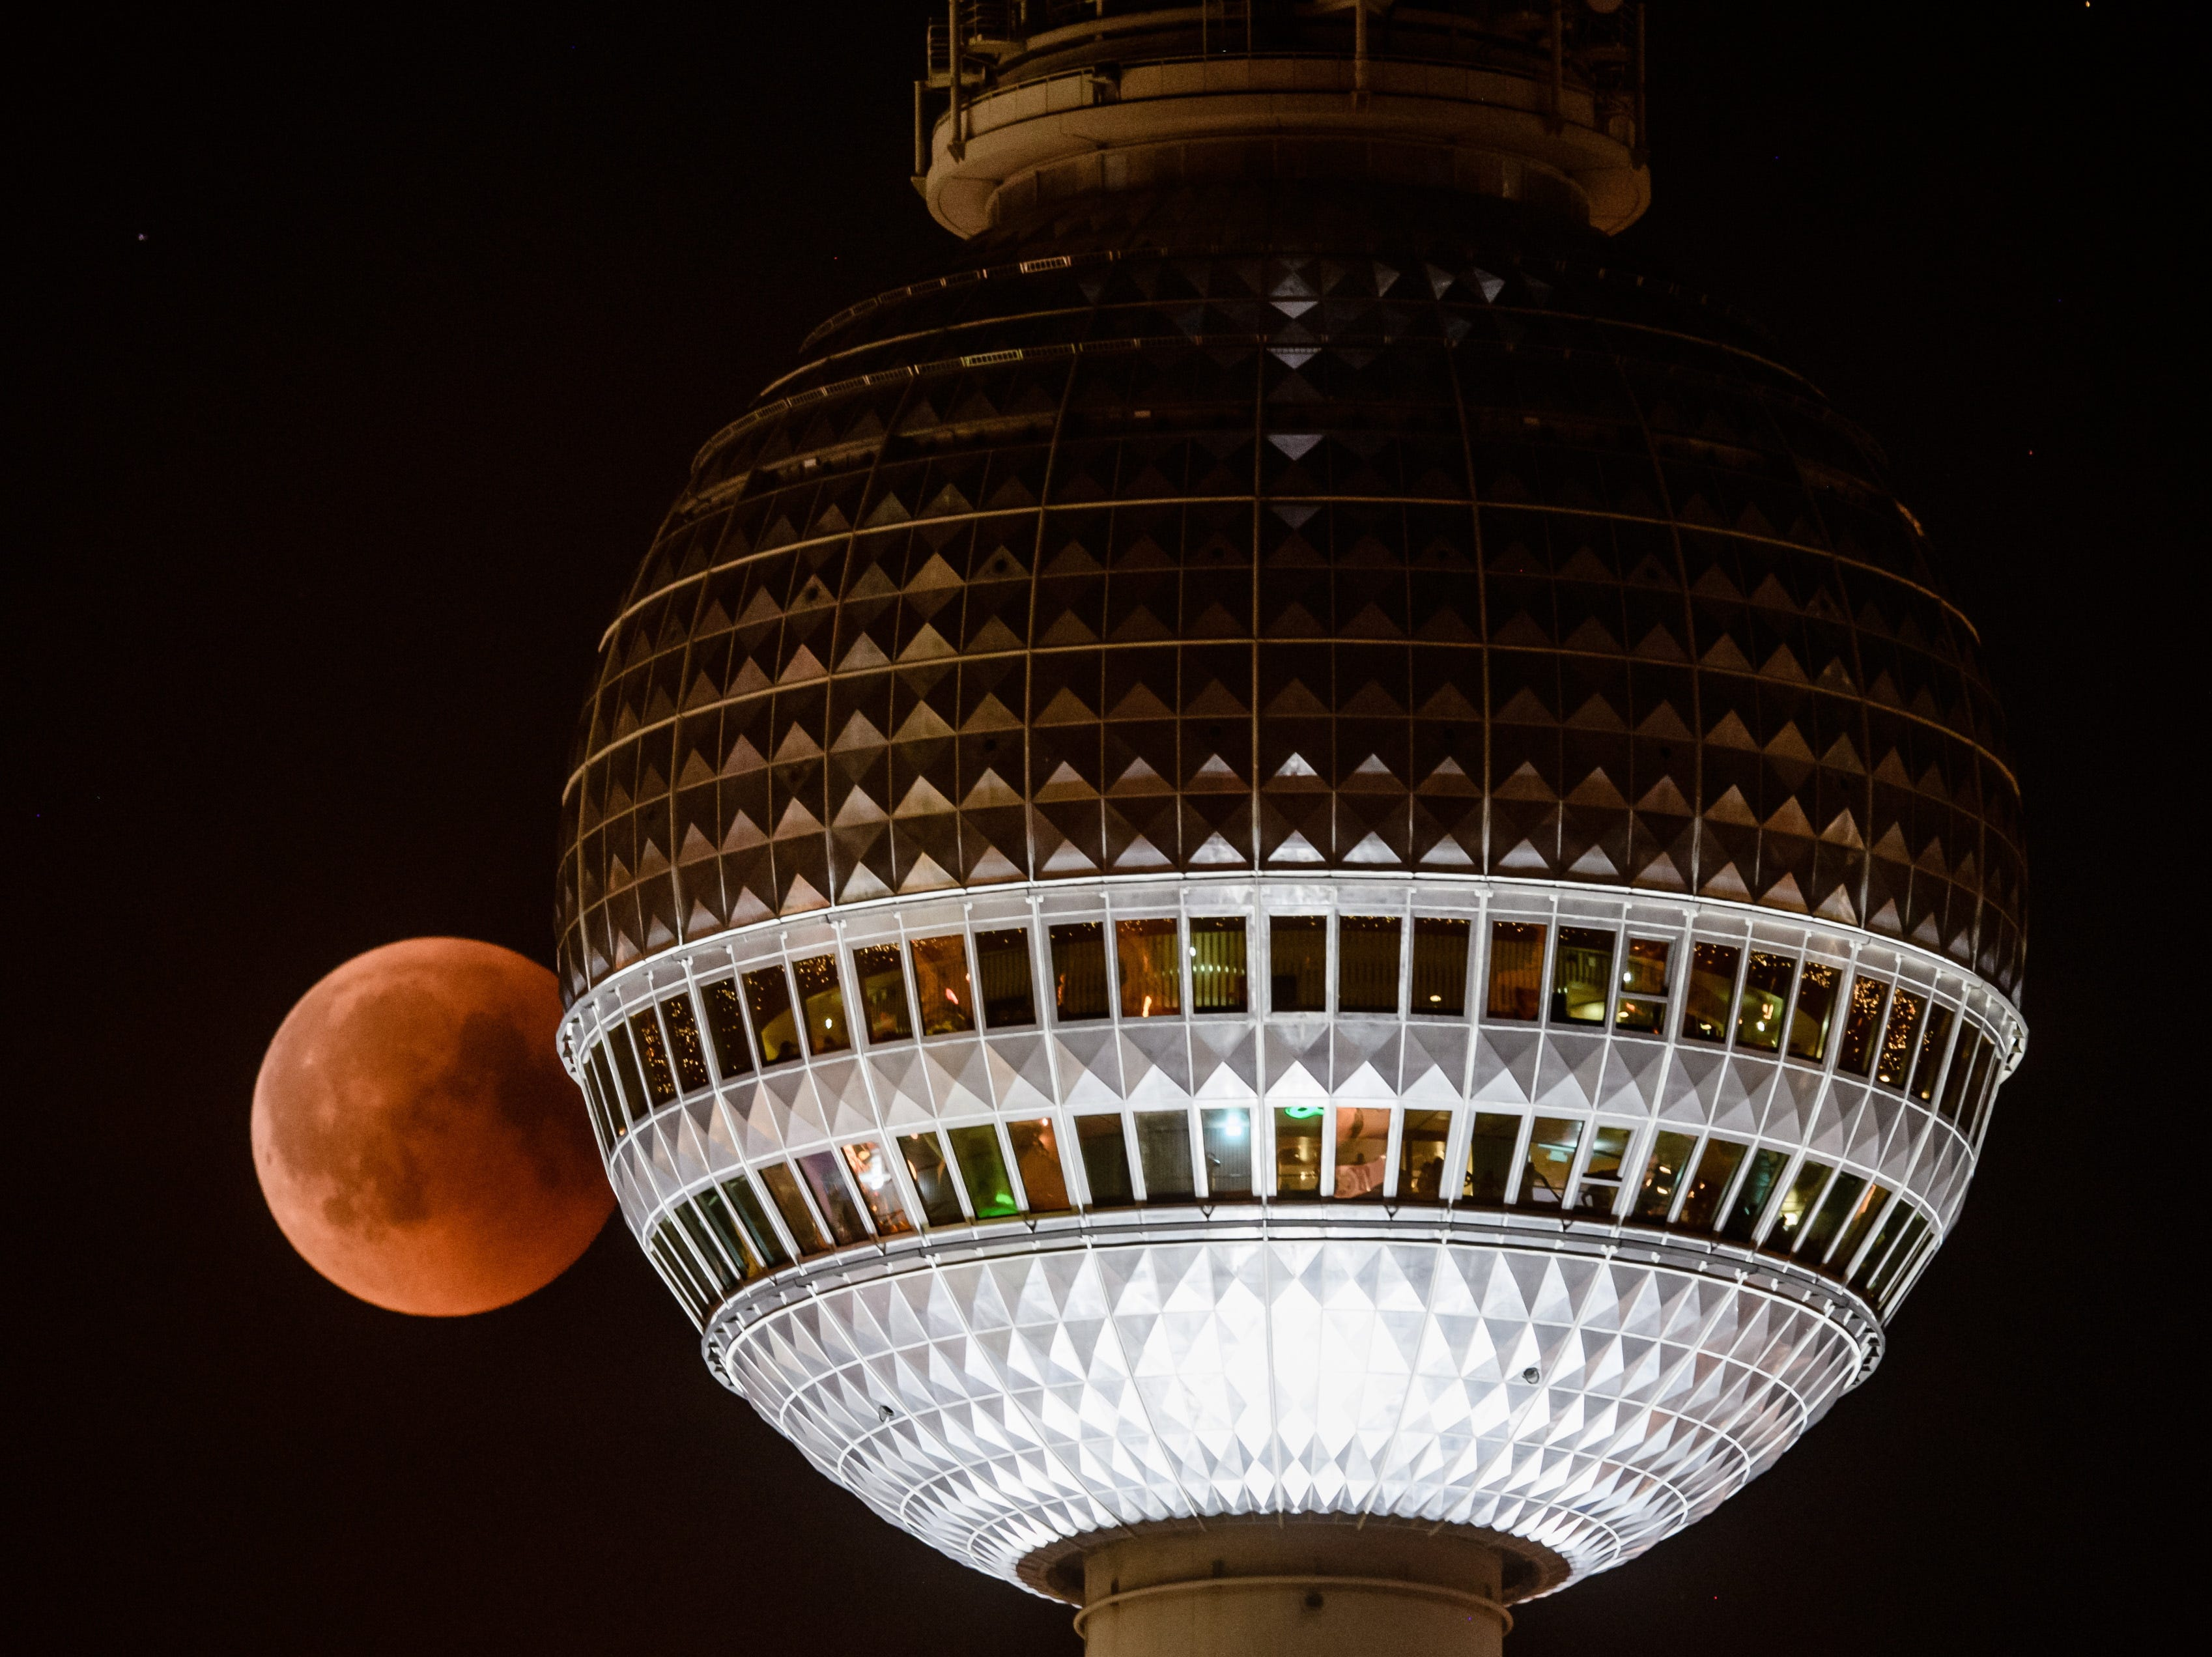 July 27, 2018: The red colored moon can be seen next to Berlin TV Tower in Berlin. The lunar eclipse on this night was the longest total lunar eclipse of the 21st century with the event spanning for over four hours, and the total eclipse phase lasting for 103 minutes.